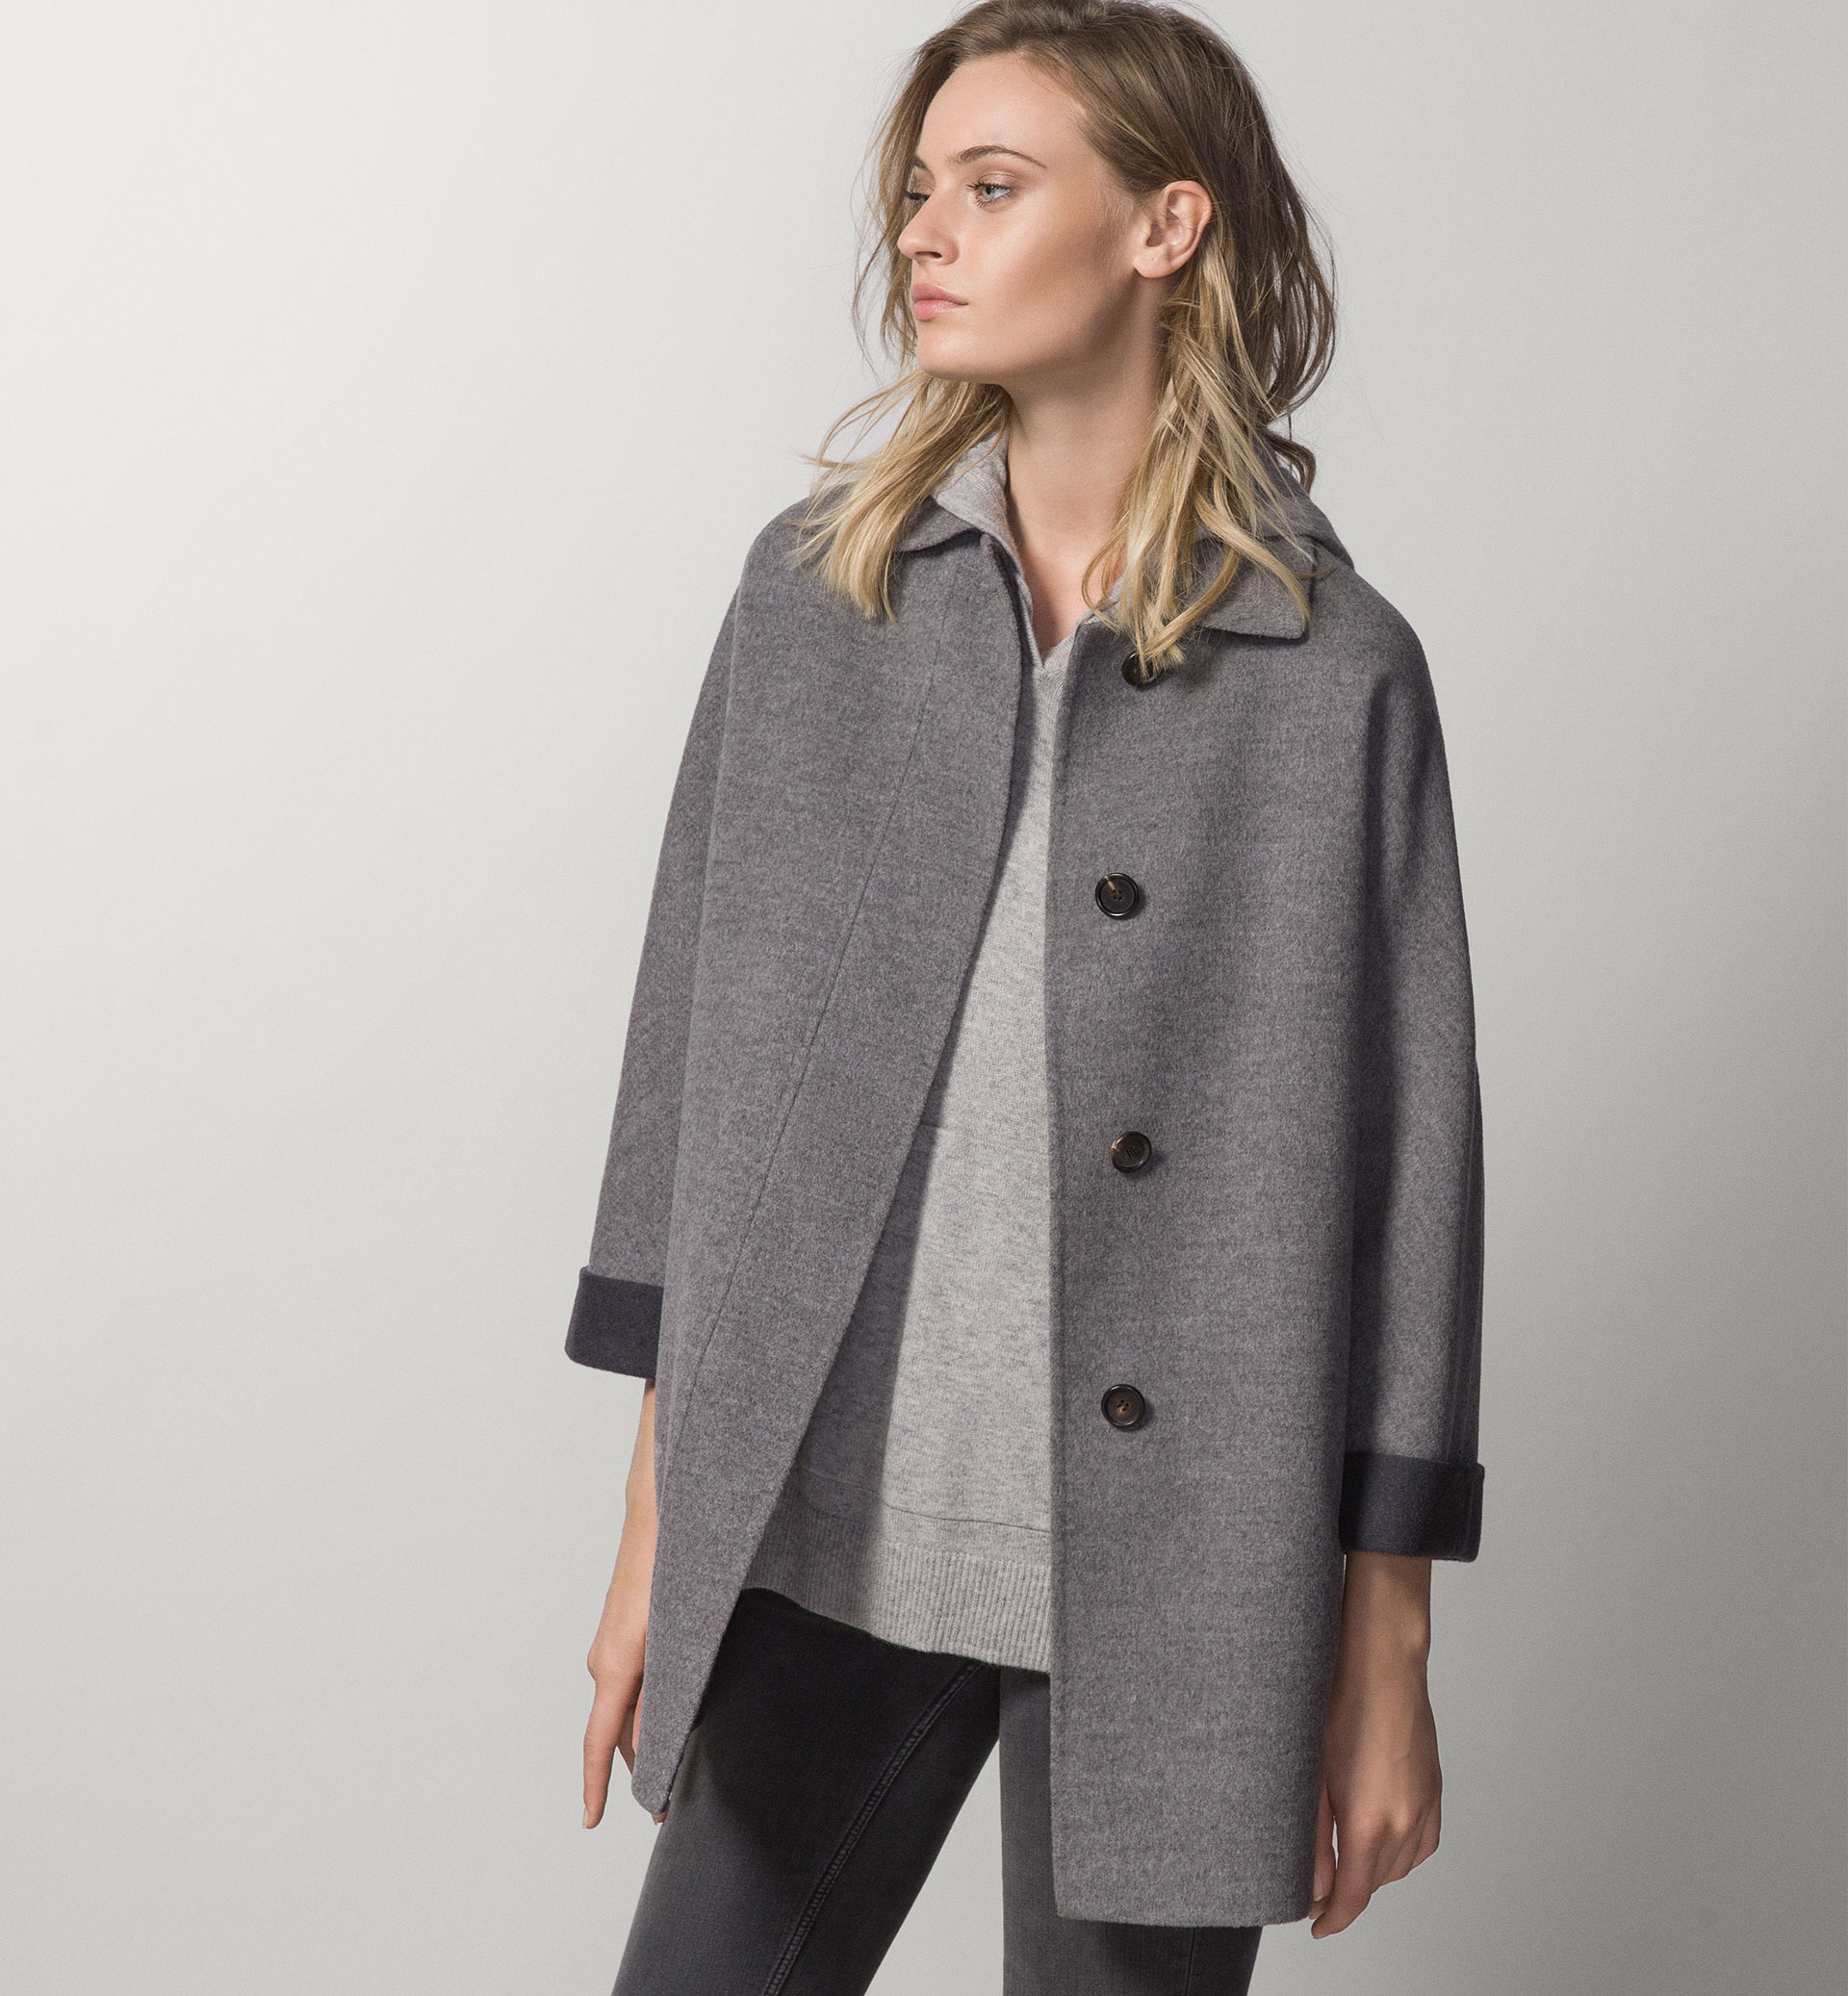 TWO-TONE COAT WITH KIMONO SLEEVES